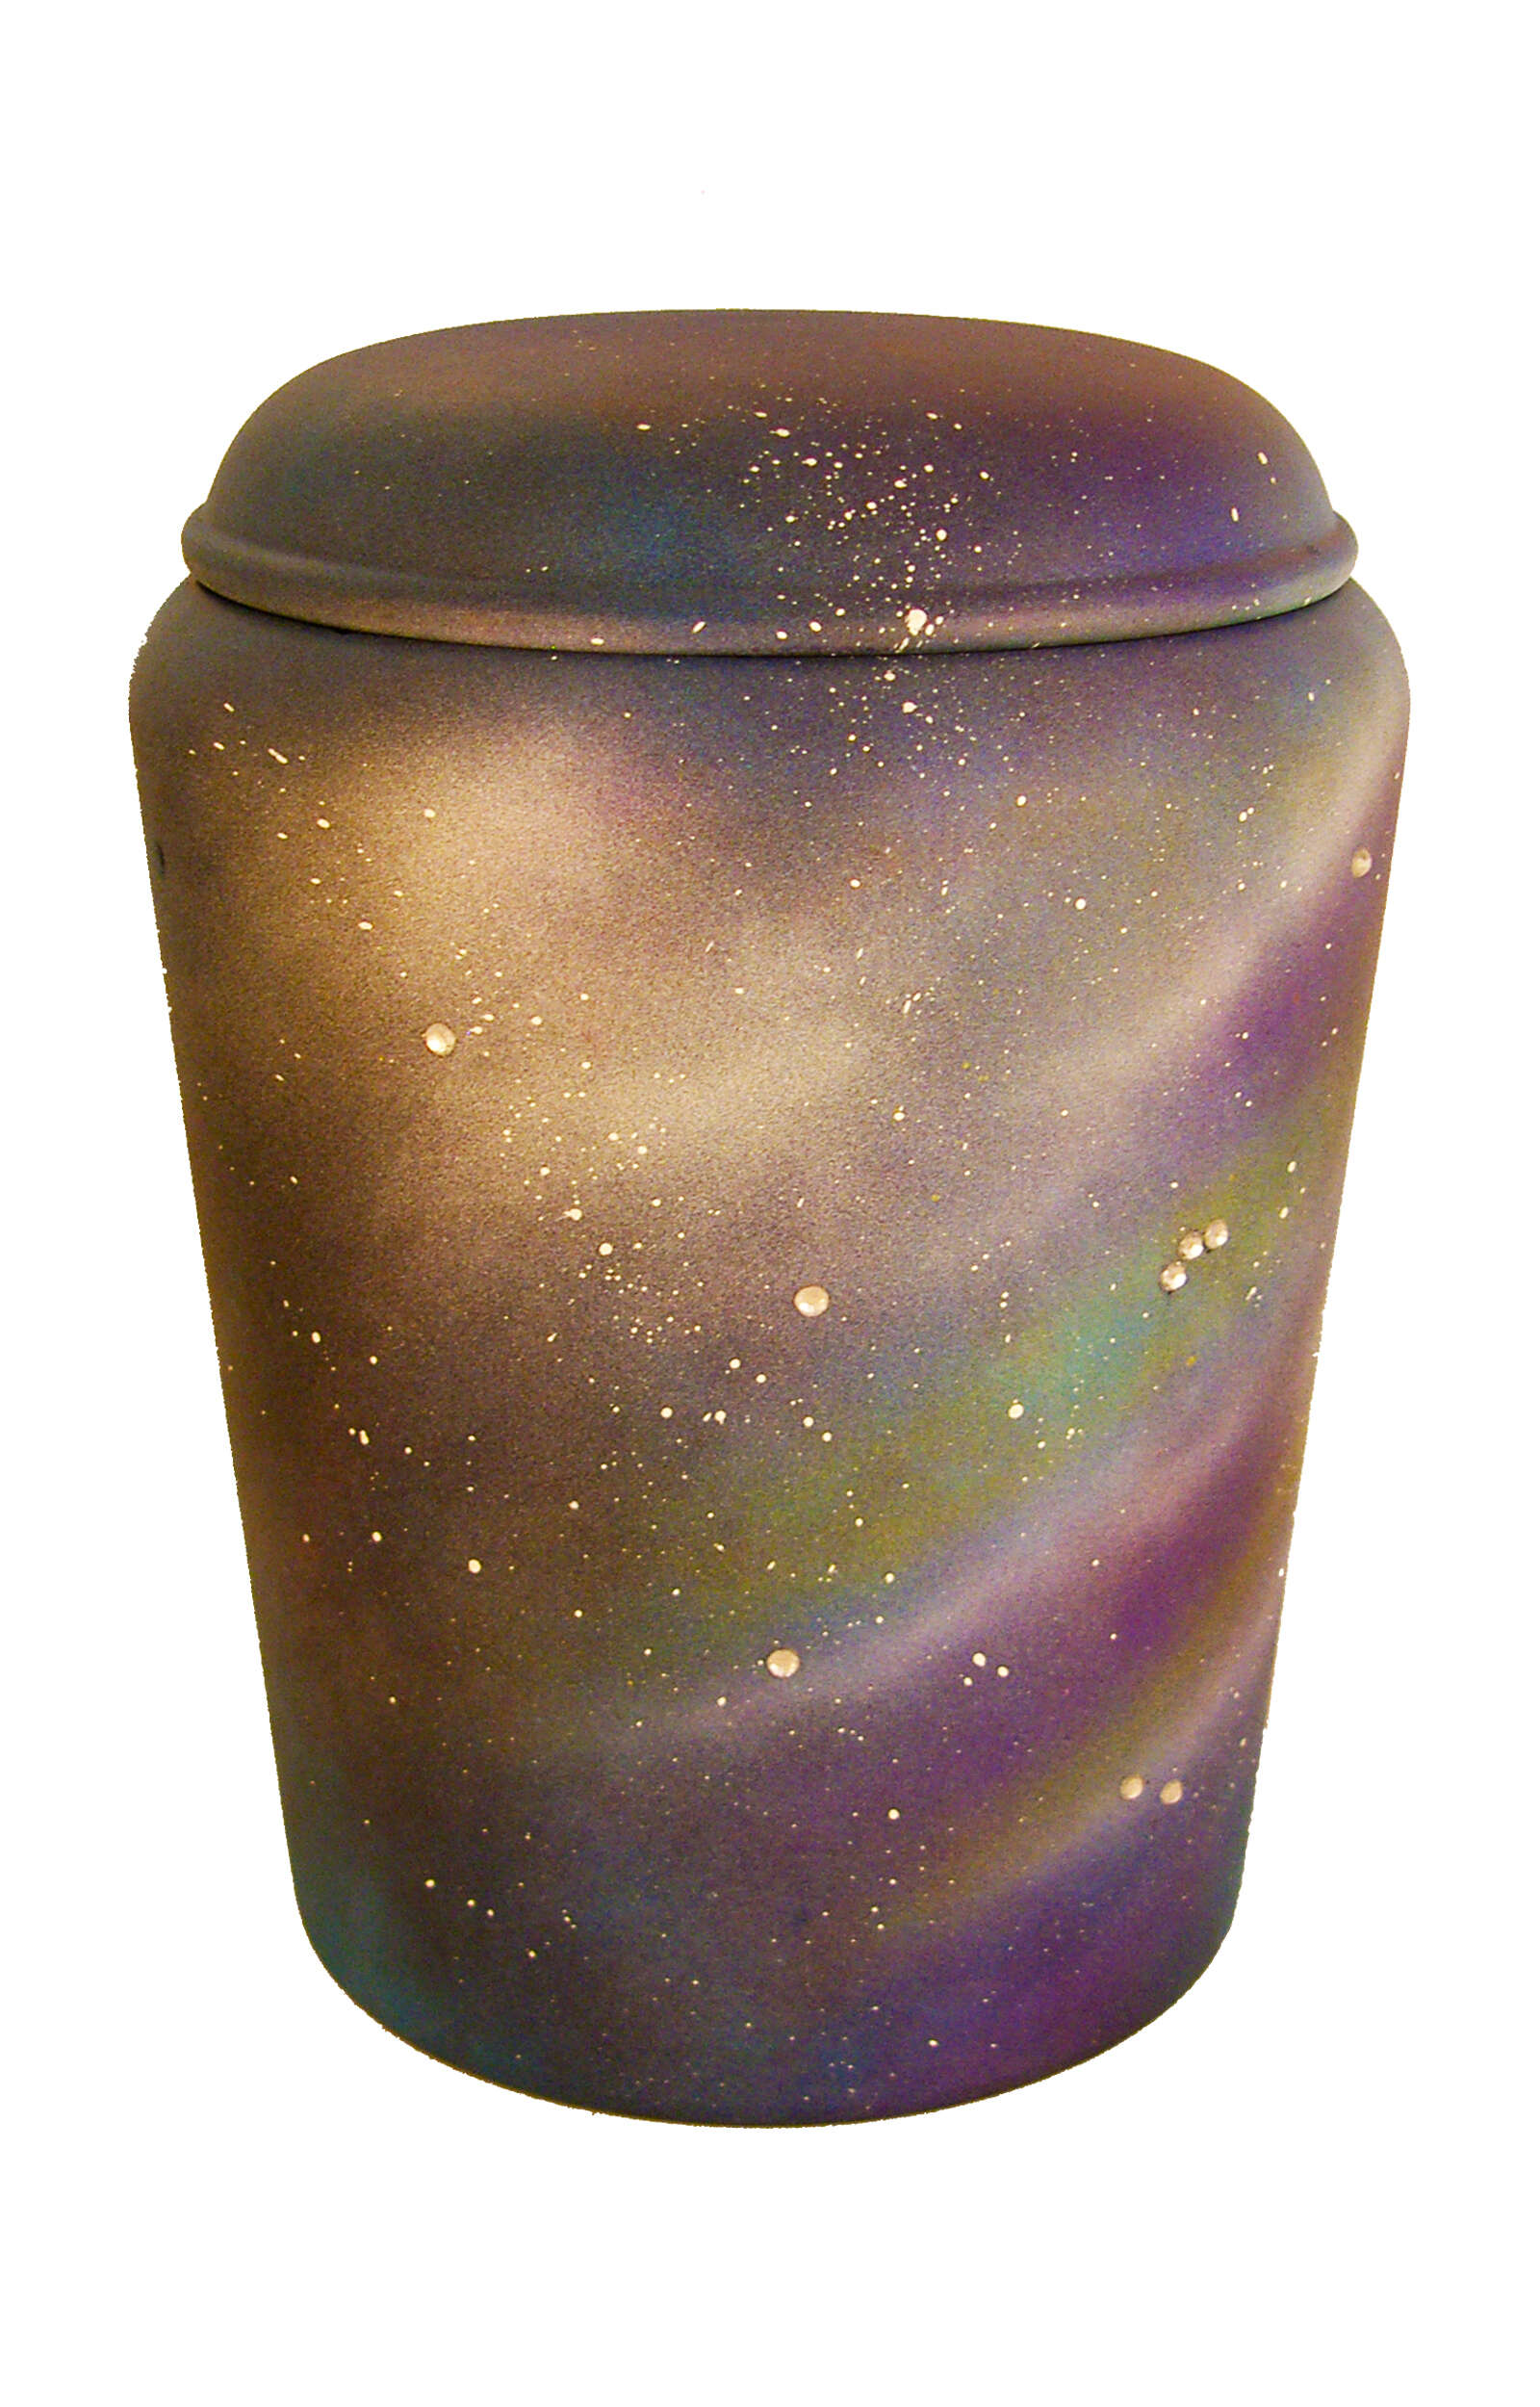 en BSU1727 biodigradable urn universe sky blue with gems funeral urn for human ashes